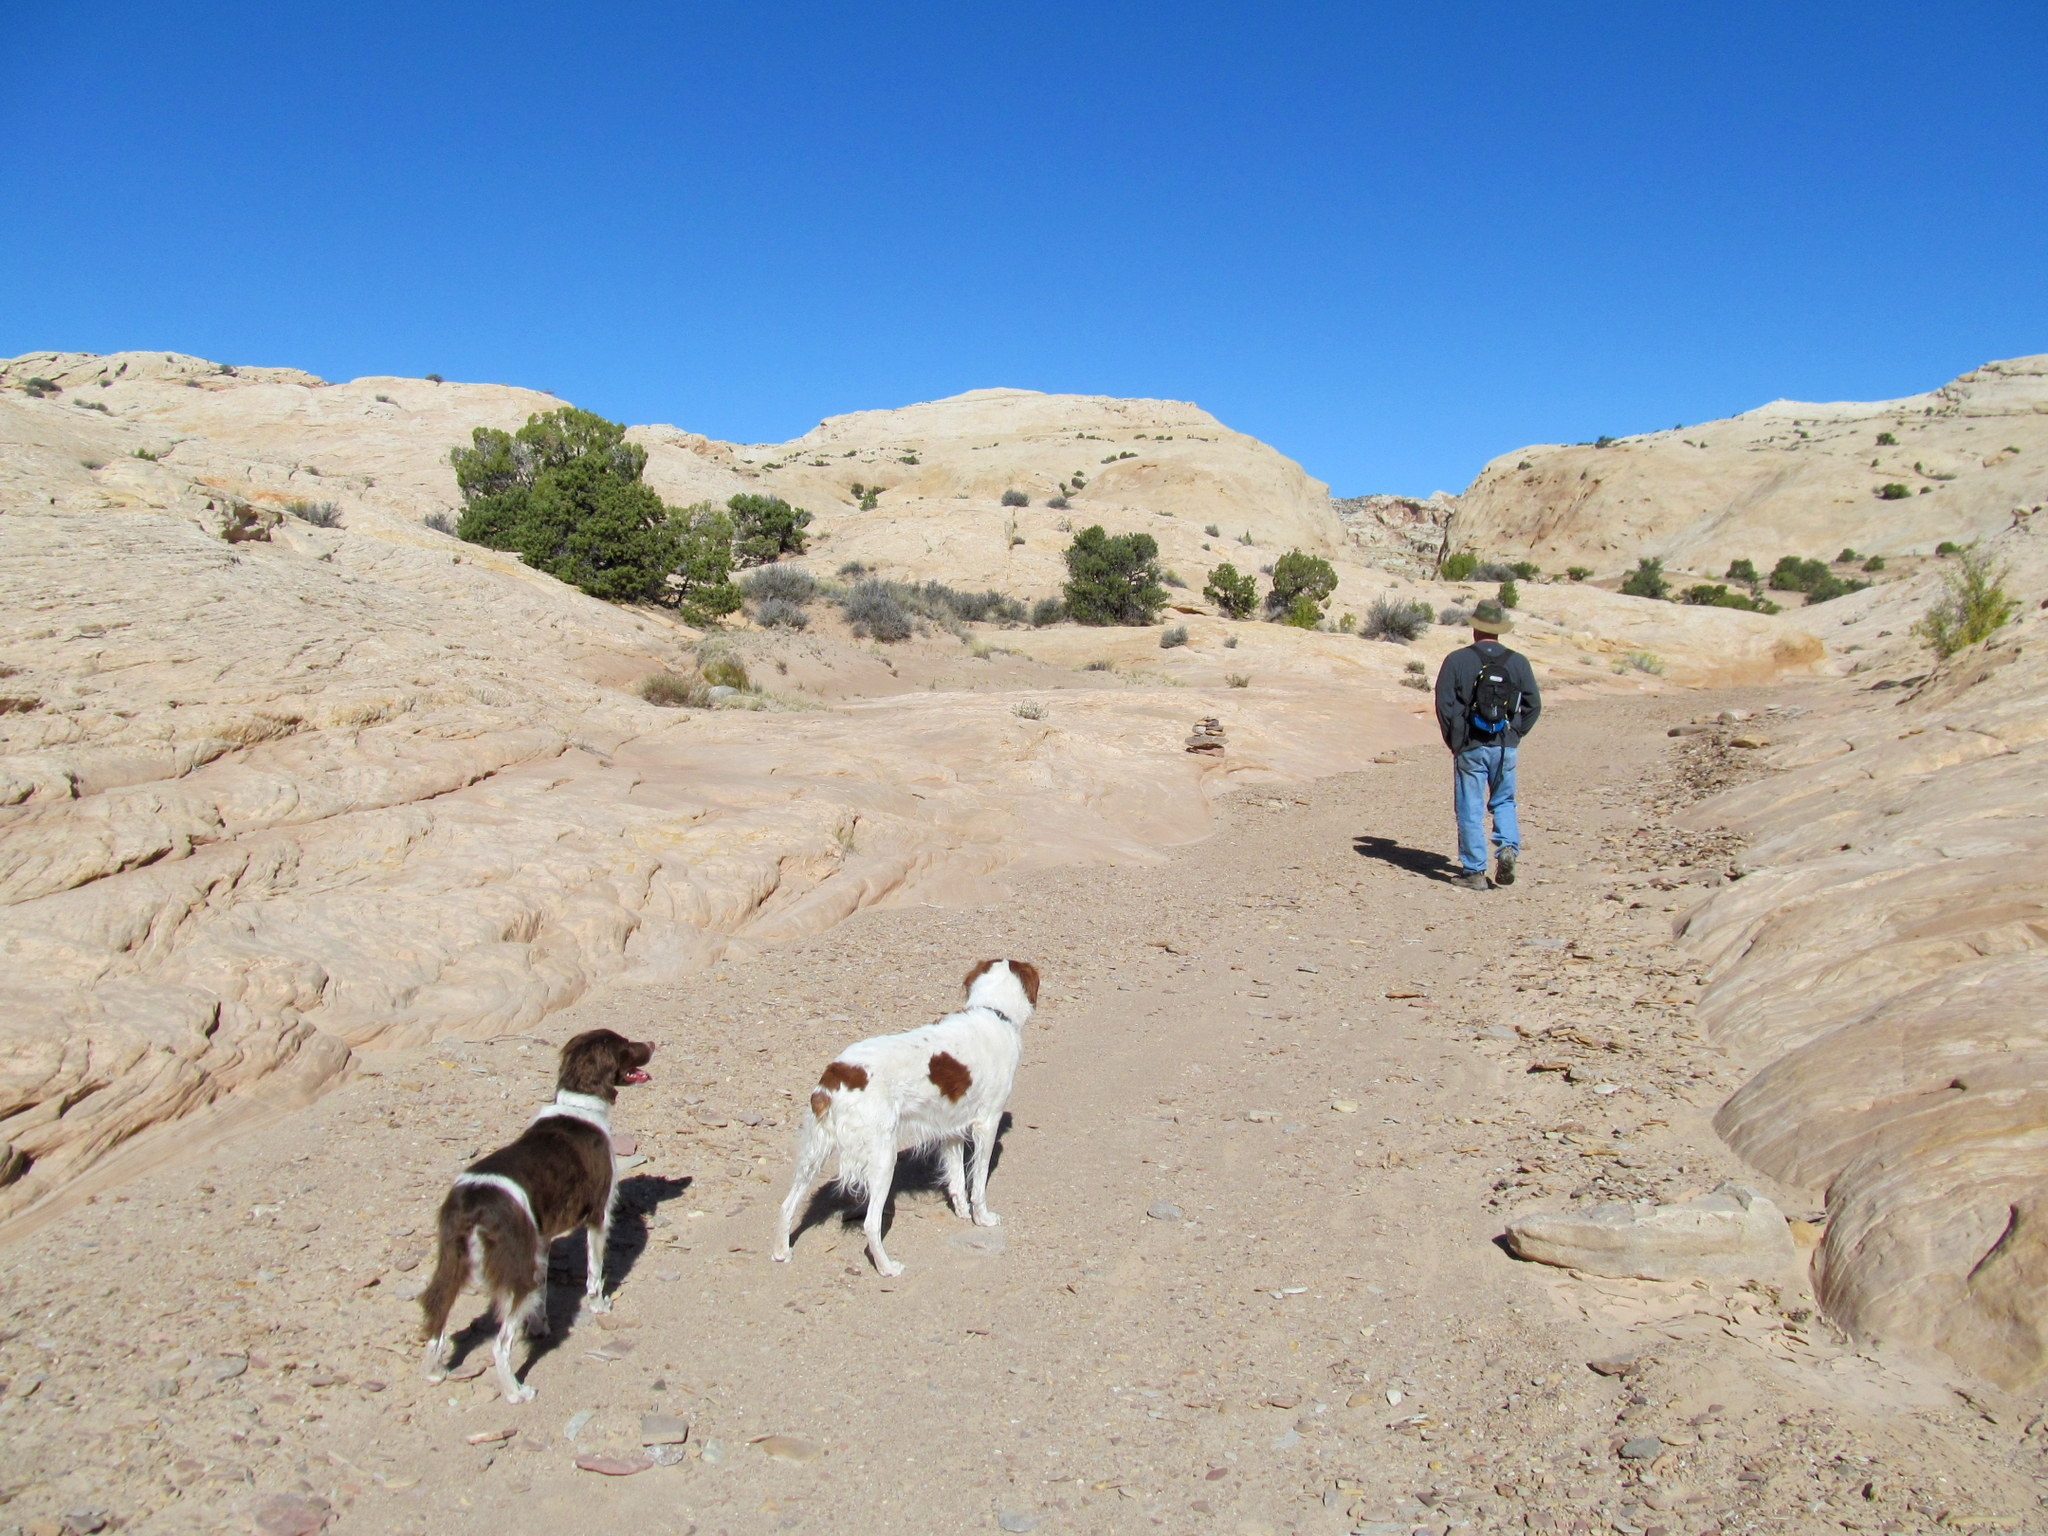 Photo: Starting up Farnsworth Canyon